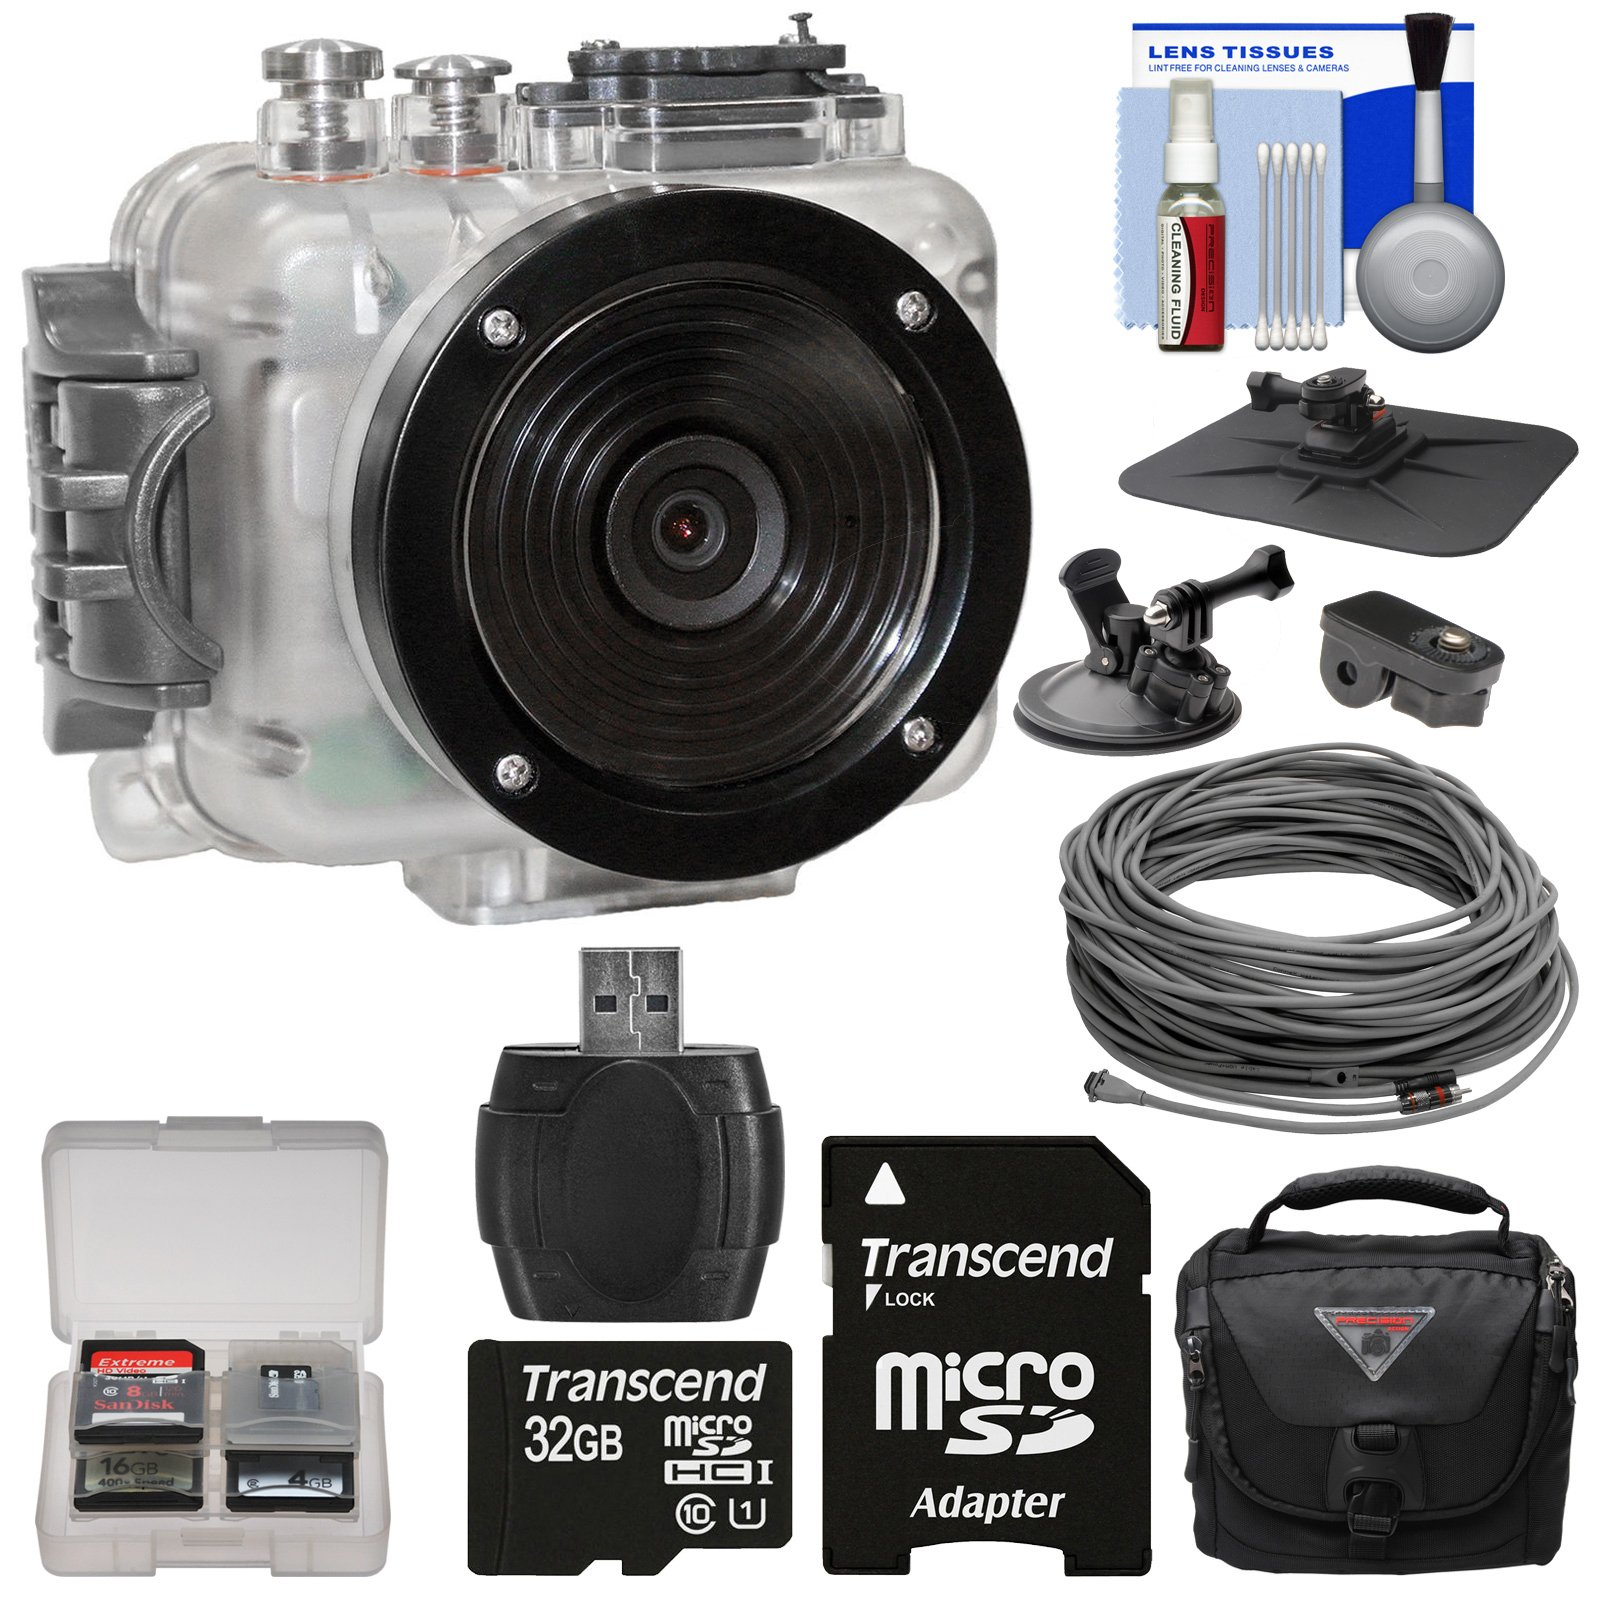 Intova Connex 1080p HD Waterproof Video Action Camera Camcorder (200 ft/ 60m) with Video Cable (40m) + 32GB Card + Car Suction Cup & Dashboard Mounts + Case + Kit